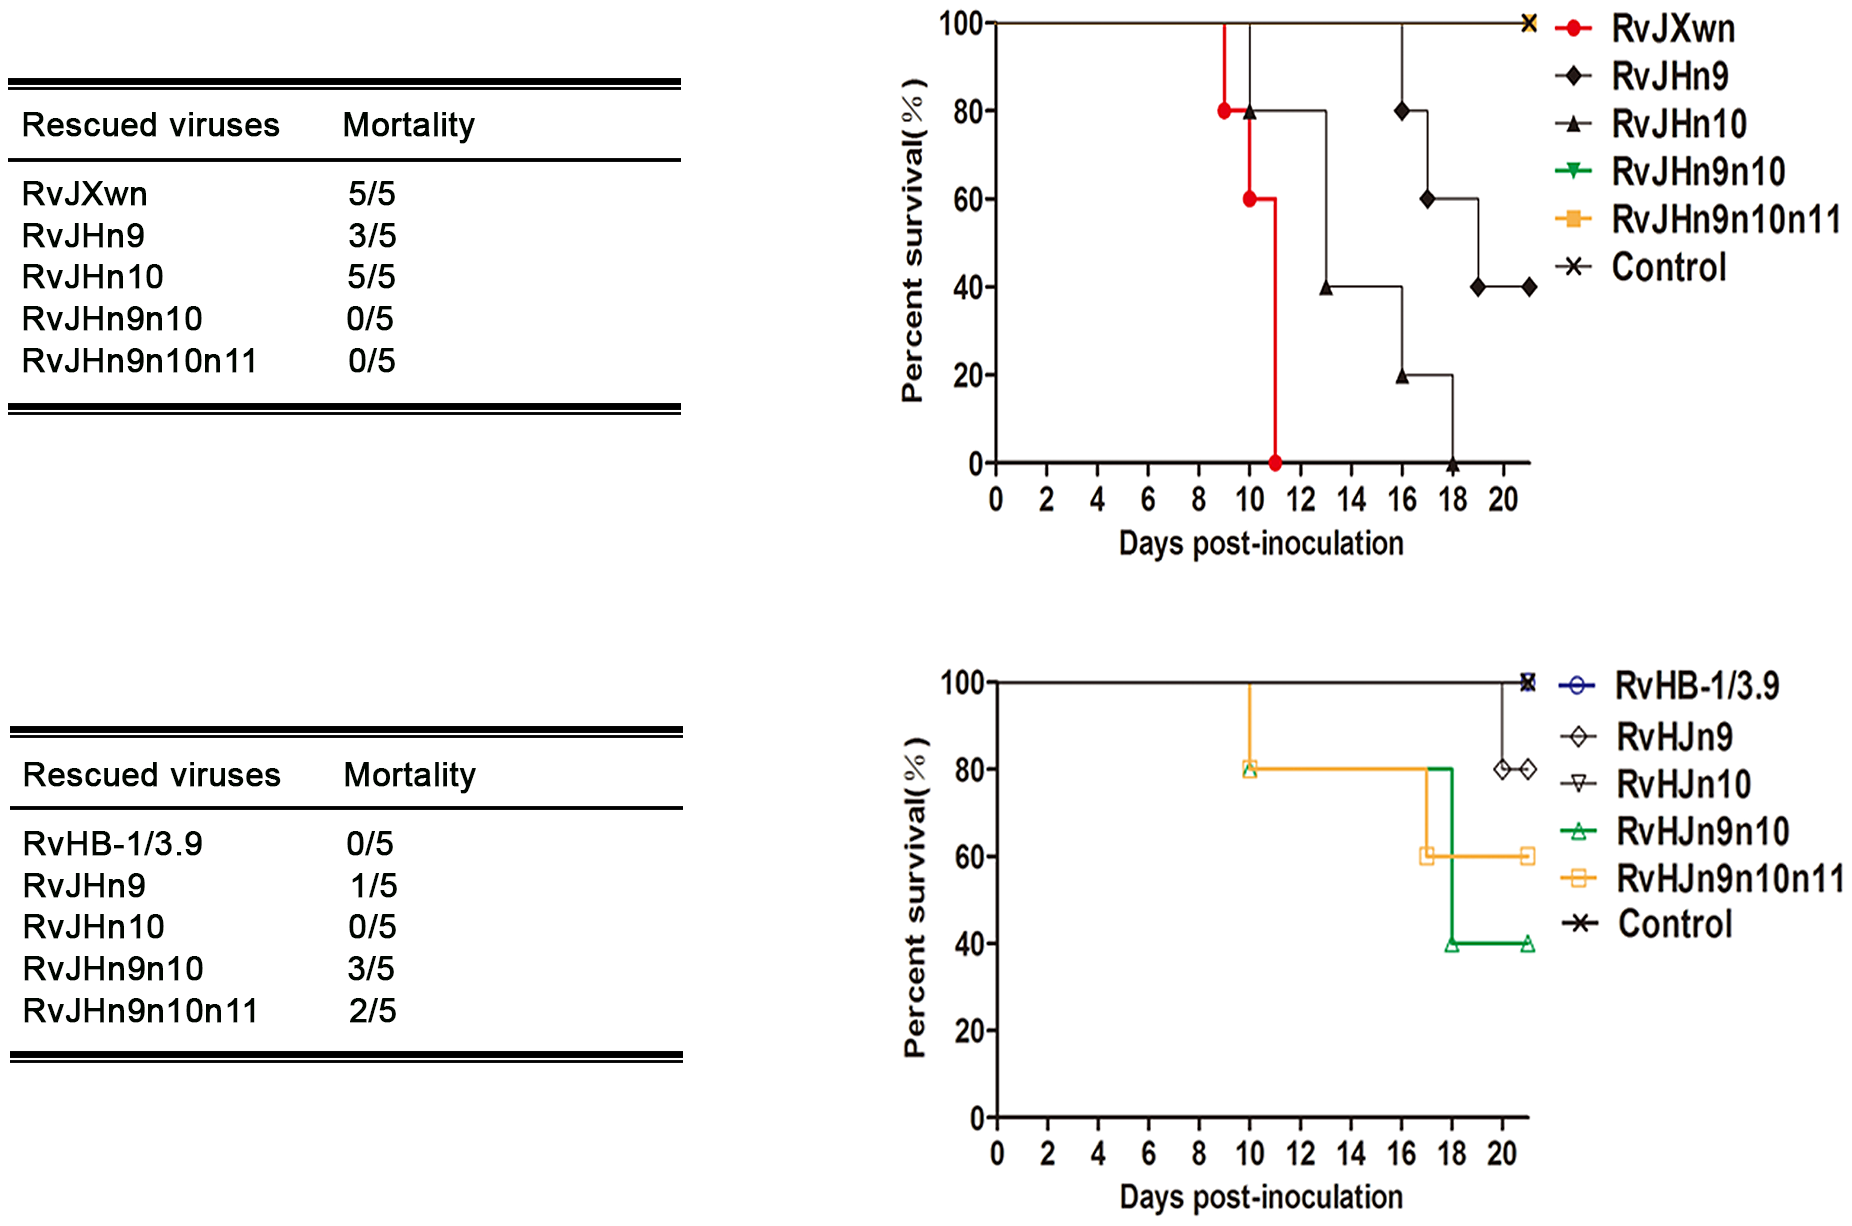 The mortality and survival curve of piglets inoculated with the rescued viruses.